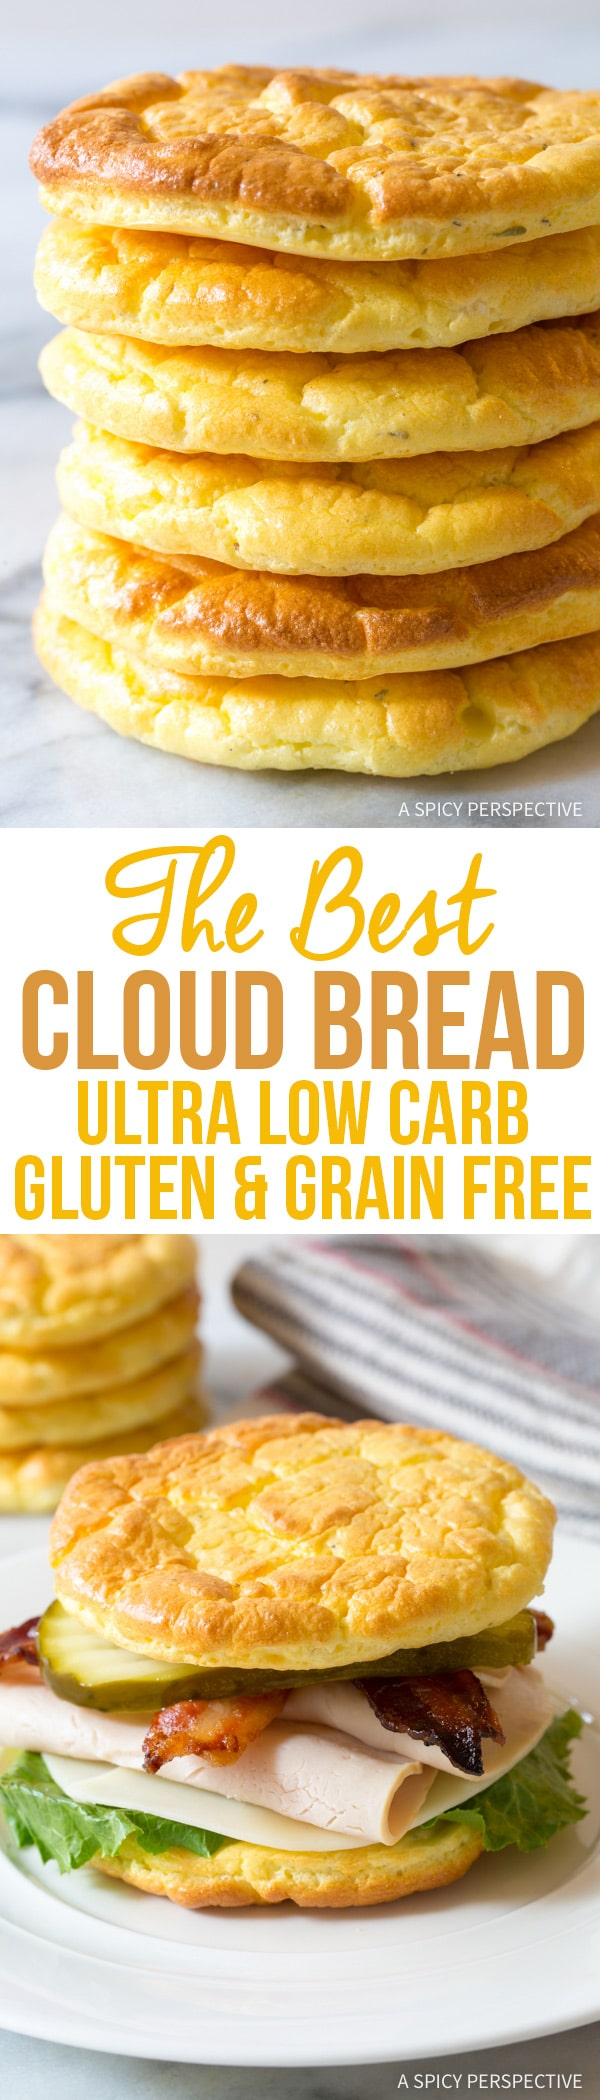 You've got to try this! The Best Cloud Bread Recipe #lowcarb #glutenfree #grainfree